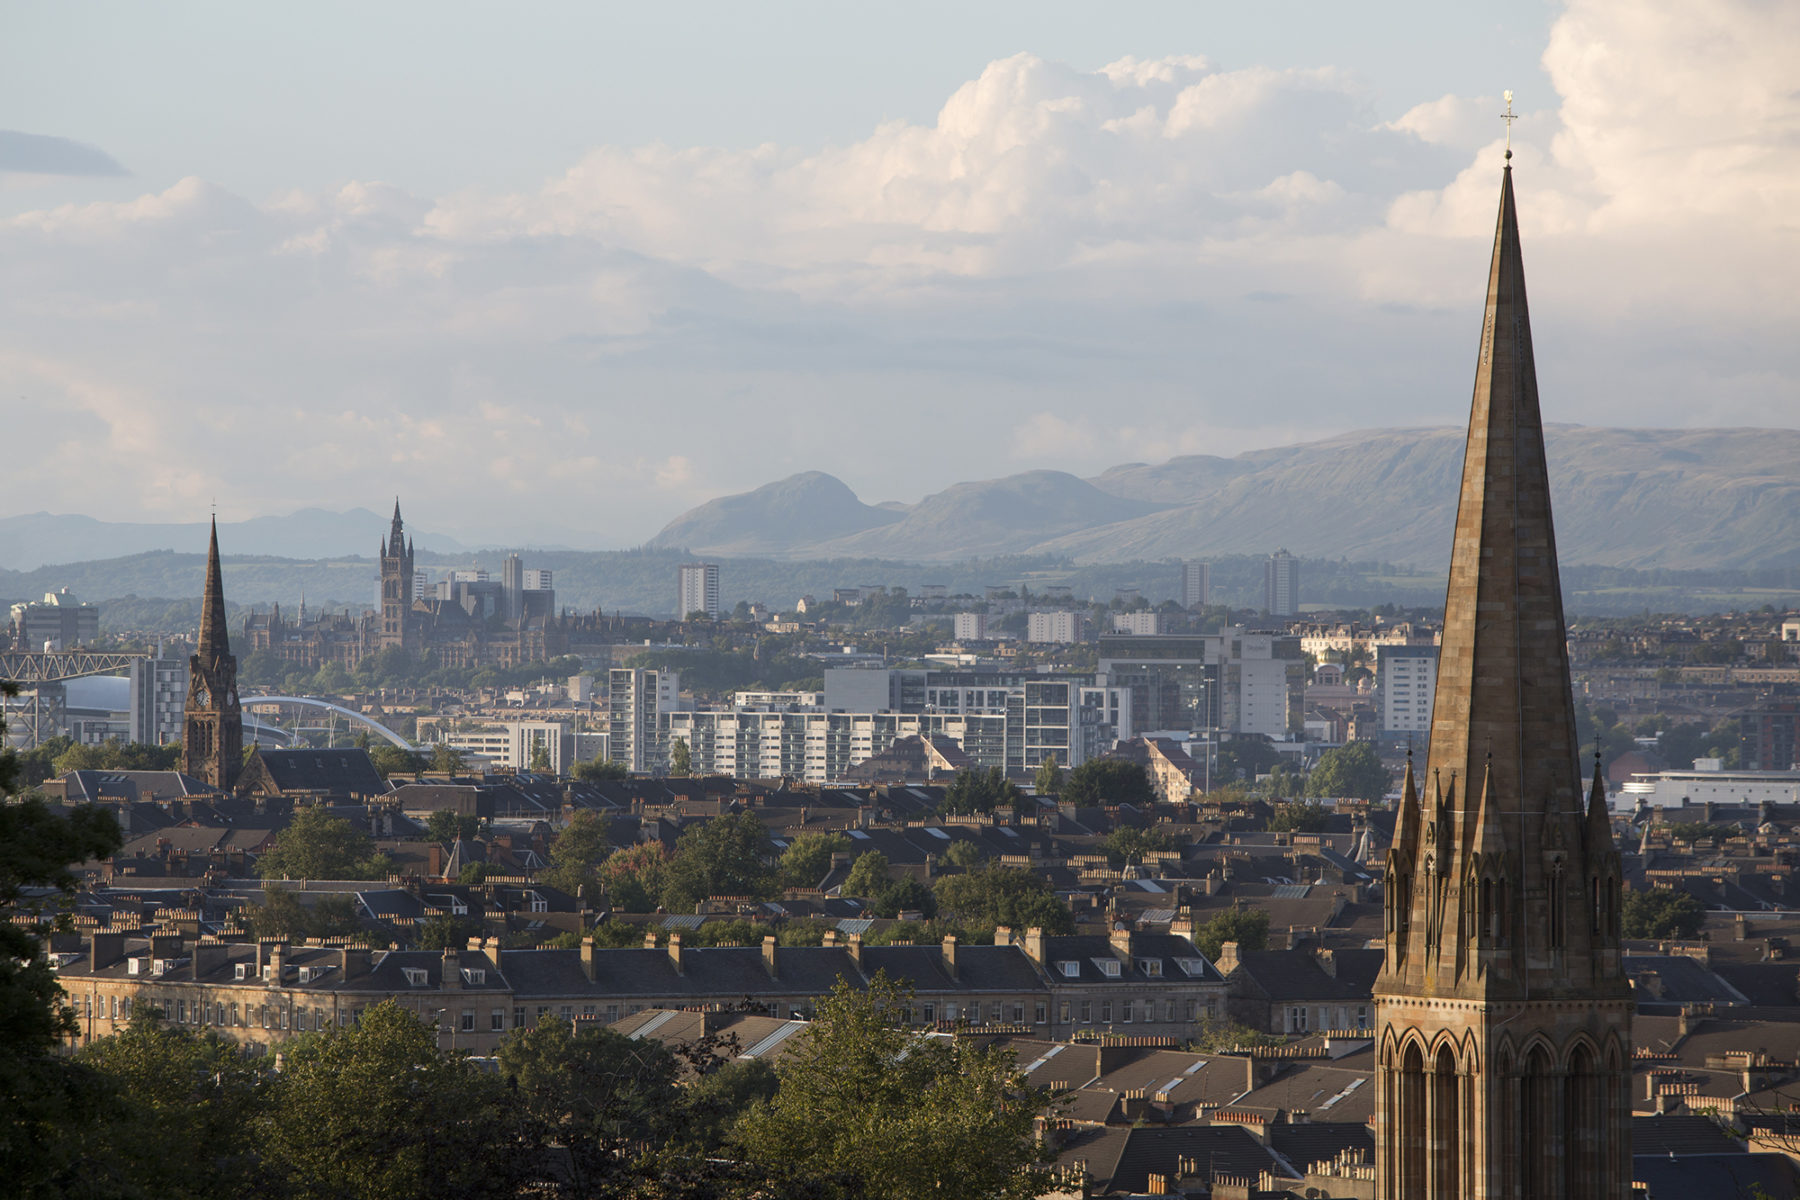 Glasgow city scape | image by McAteer Photograph